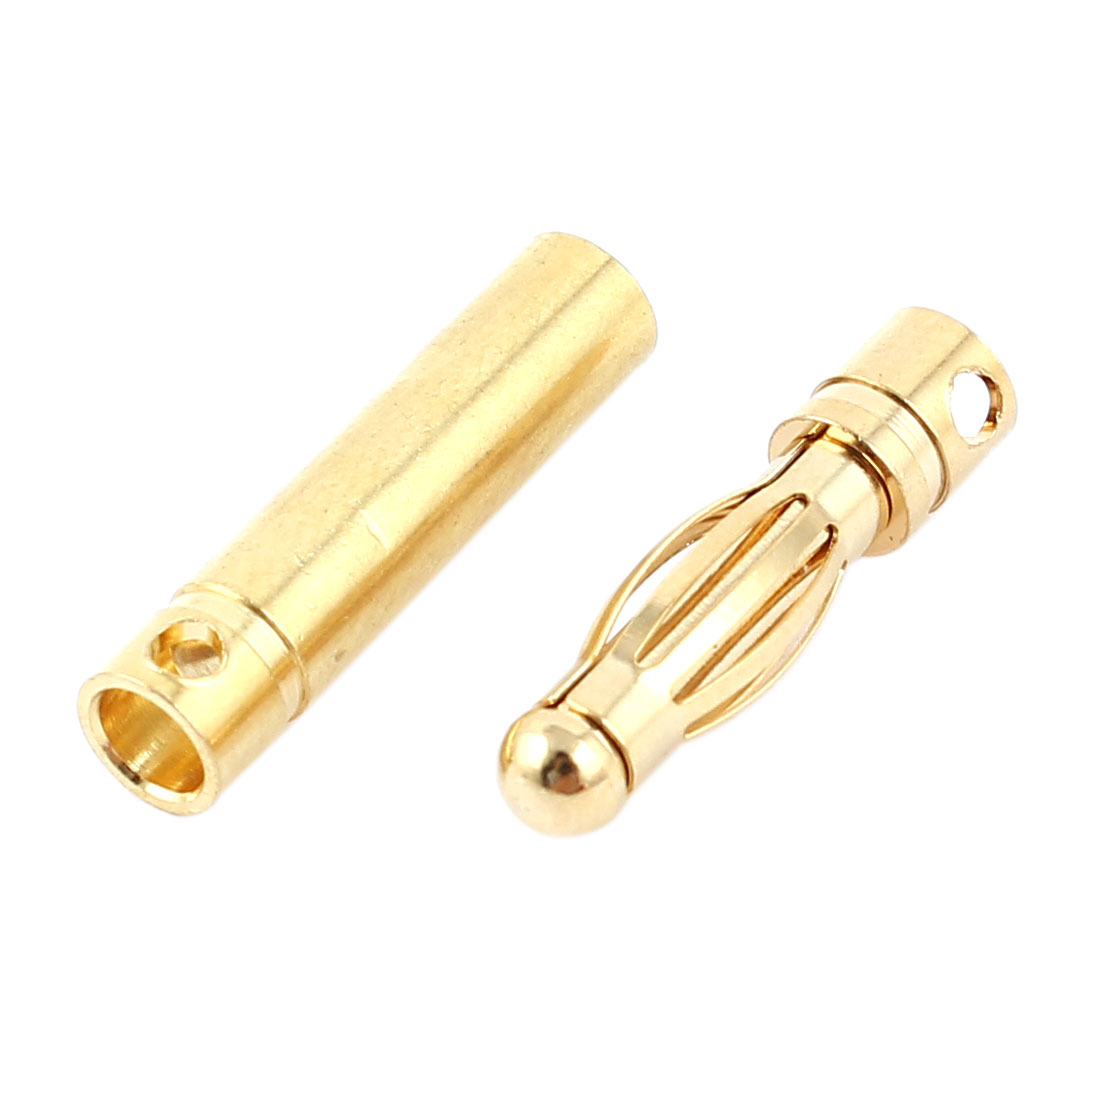 Replacement RC Brushless Motor Modle Battery Gold Plated Male/Female Banana Connector Adapter 4mm Dia Pair